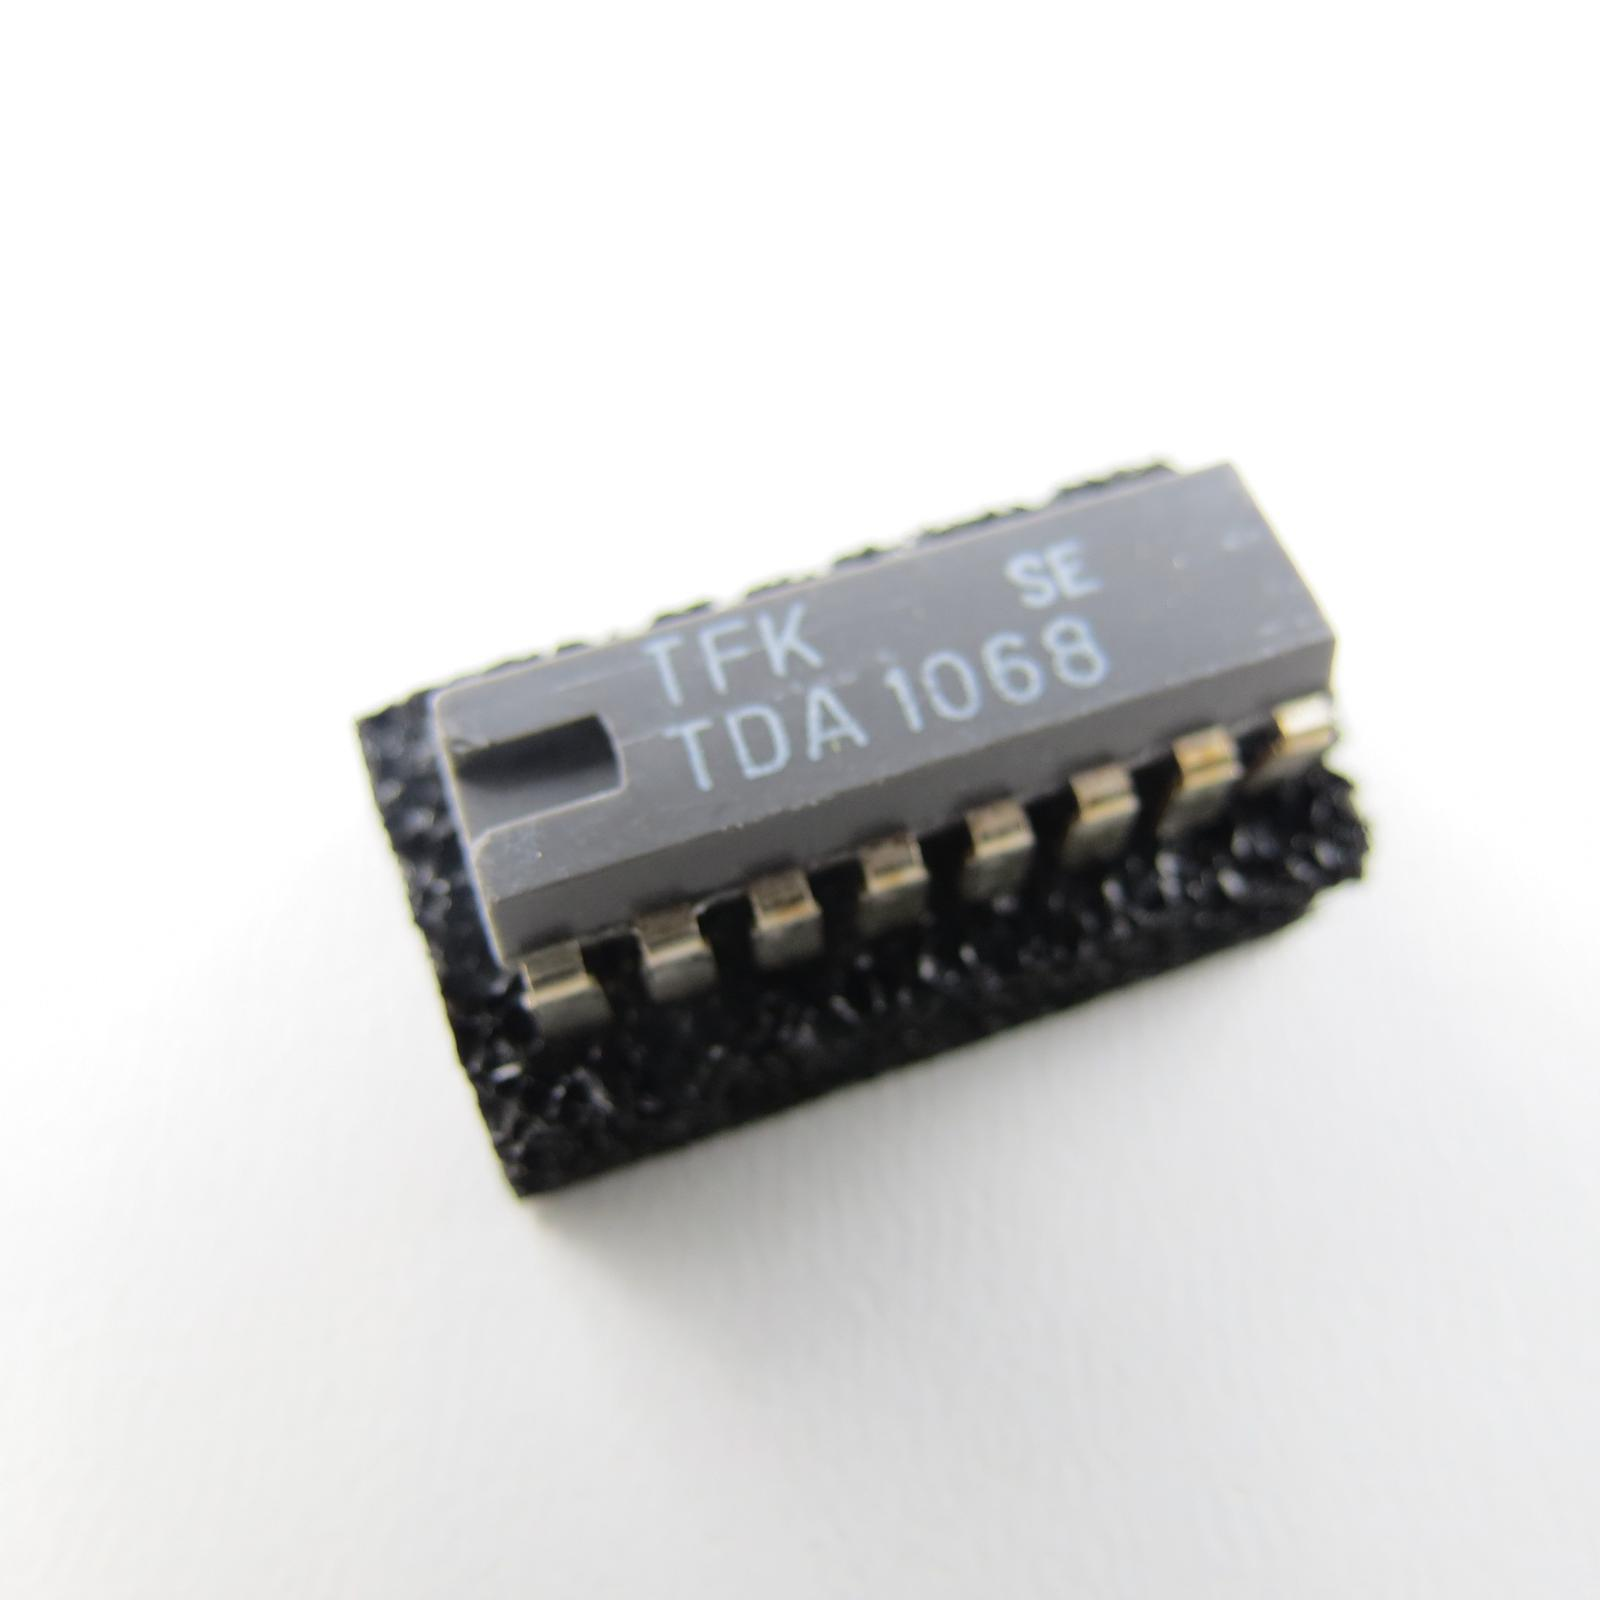 IC TDA1068 Autoradio Radio noise inverter